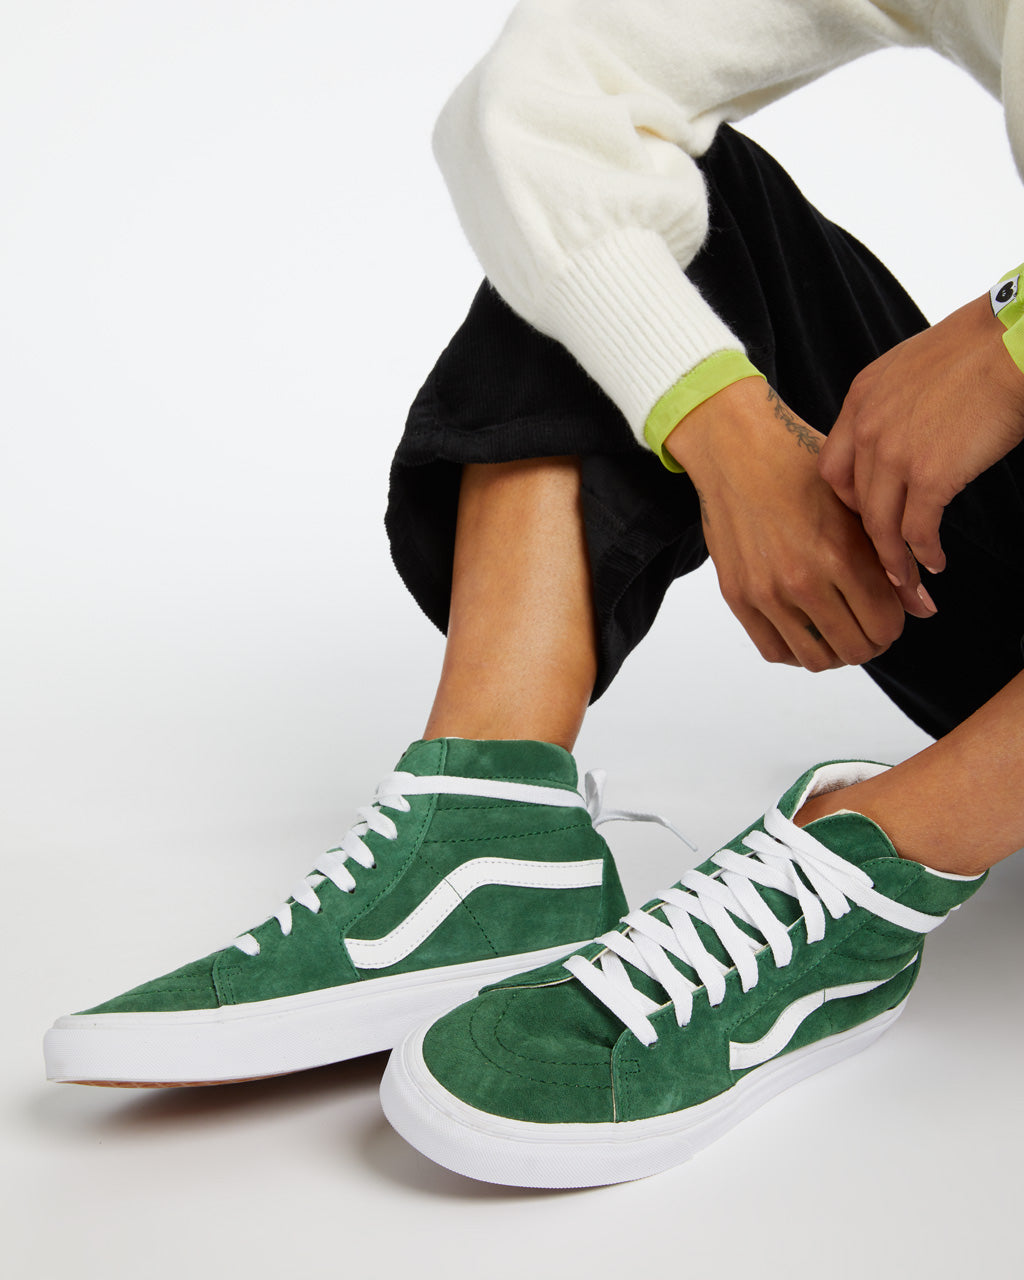 These Sk8-Hi shoes by Vans come in fairway green with white accents.